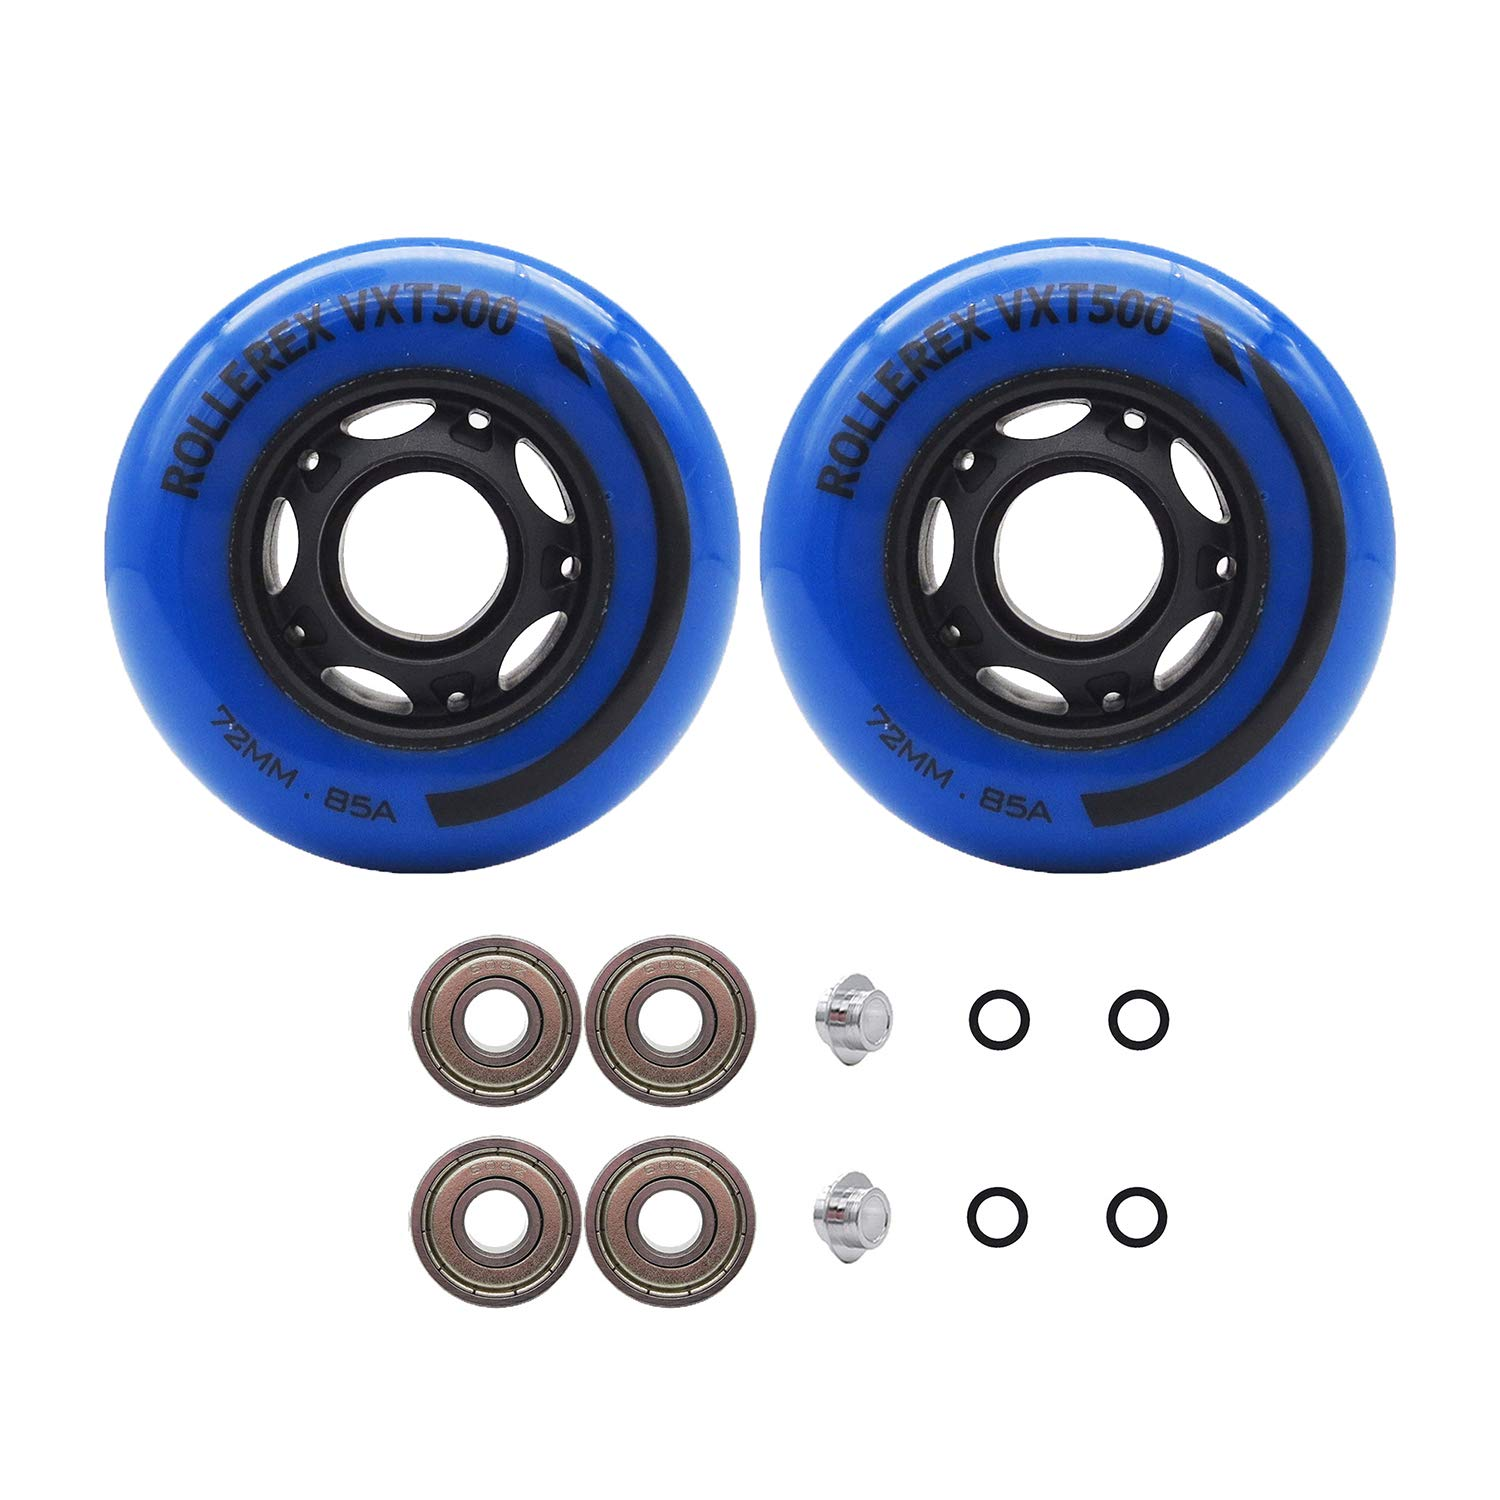 Rollerex VXT500 Inline Skate Wheels (2-Pack w/Bearings, spacers and washers) (Deep Sea Blue, 72mm) by Rollerex